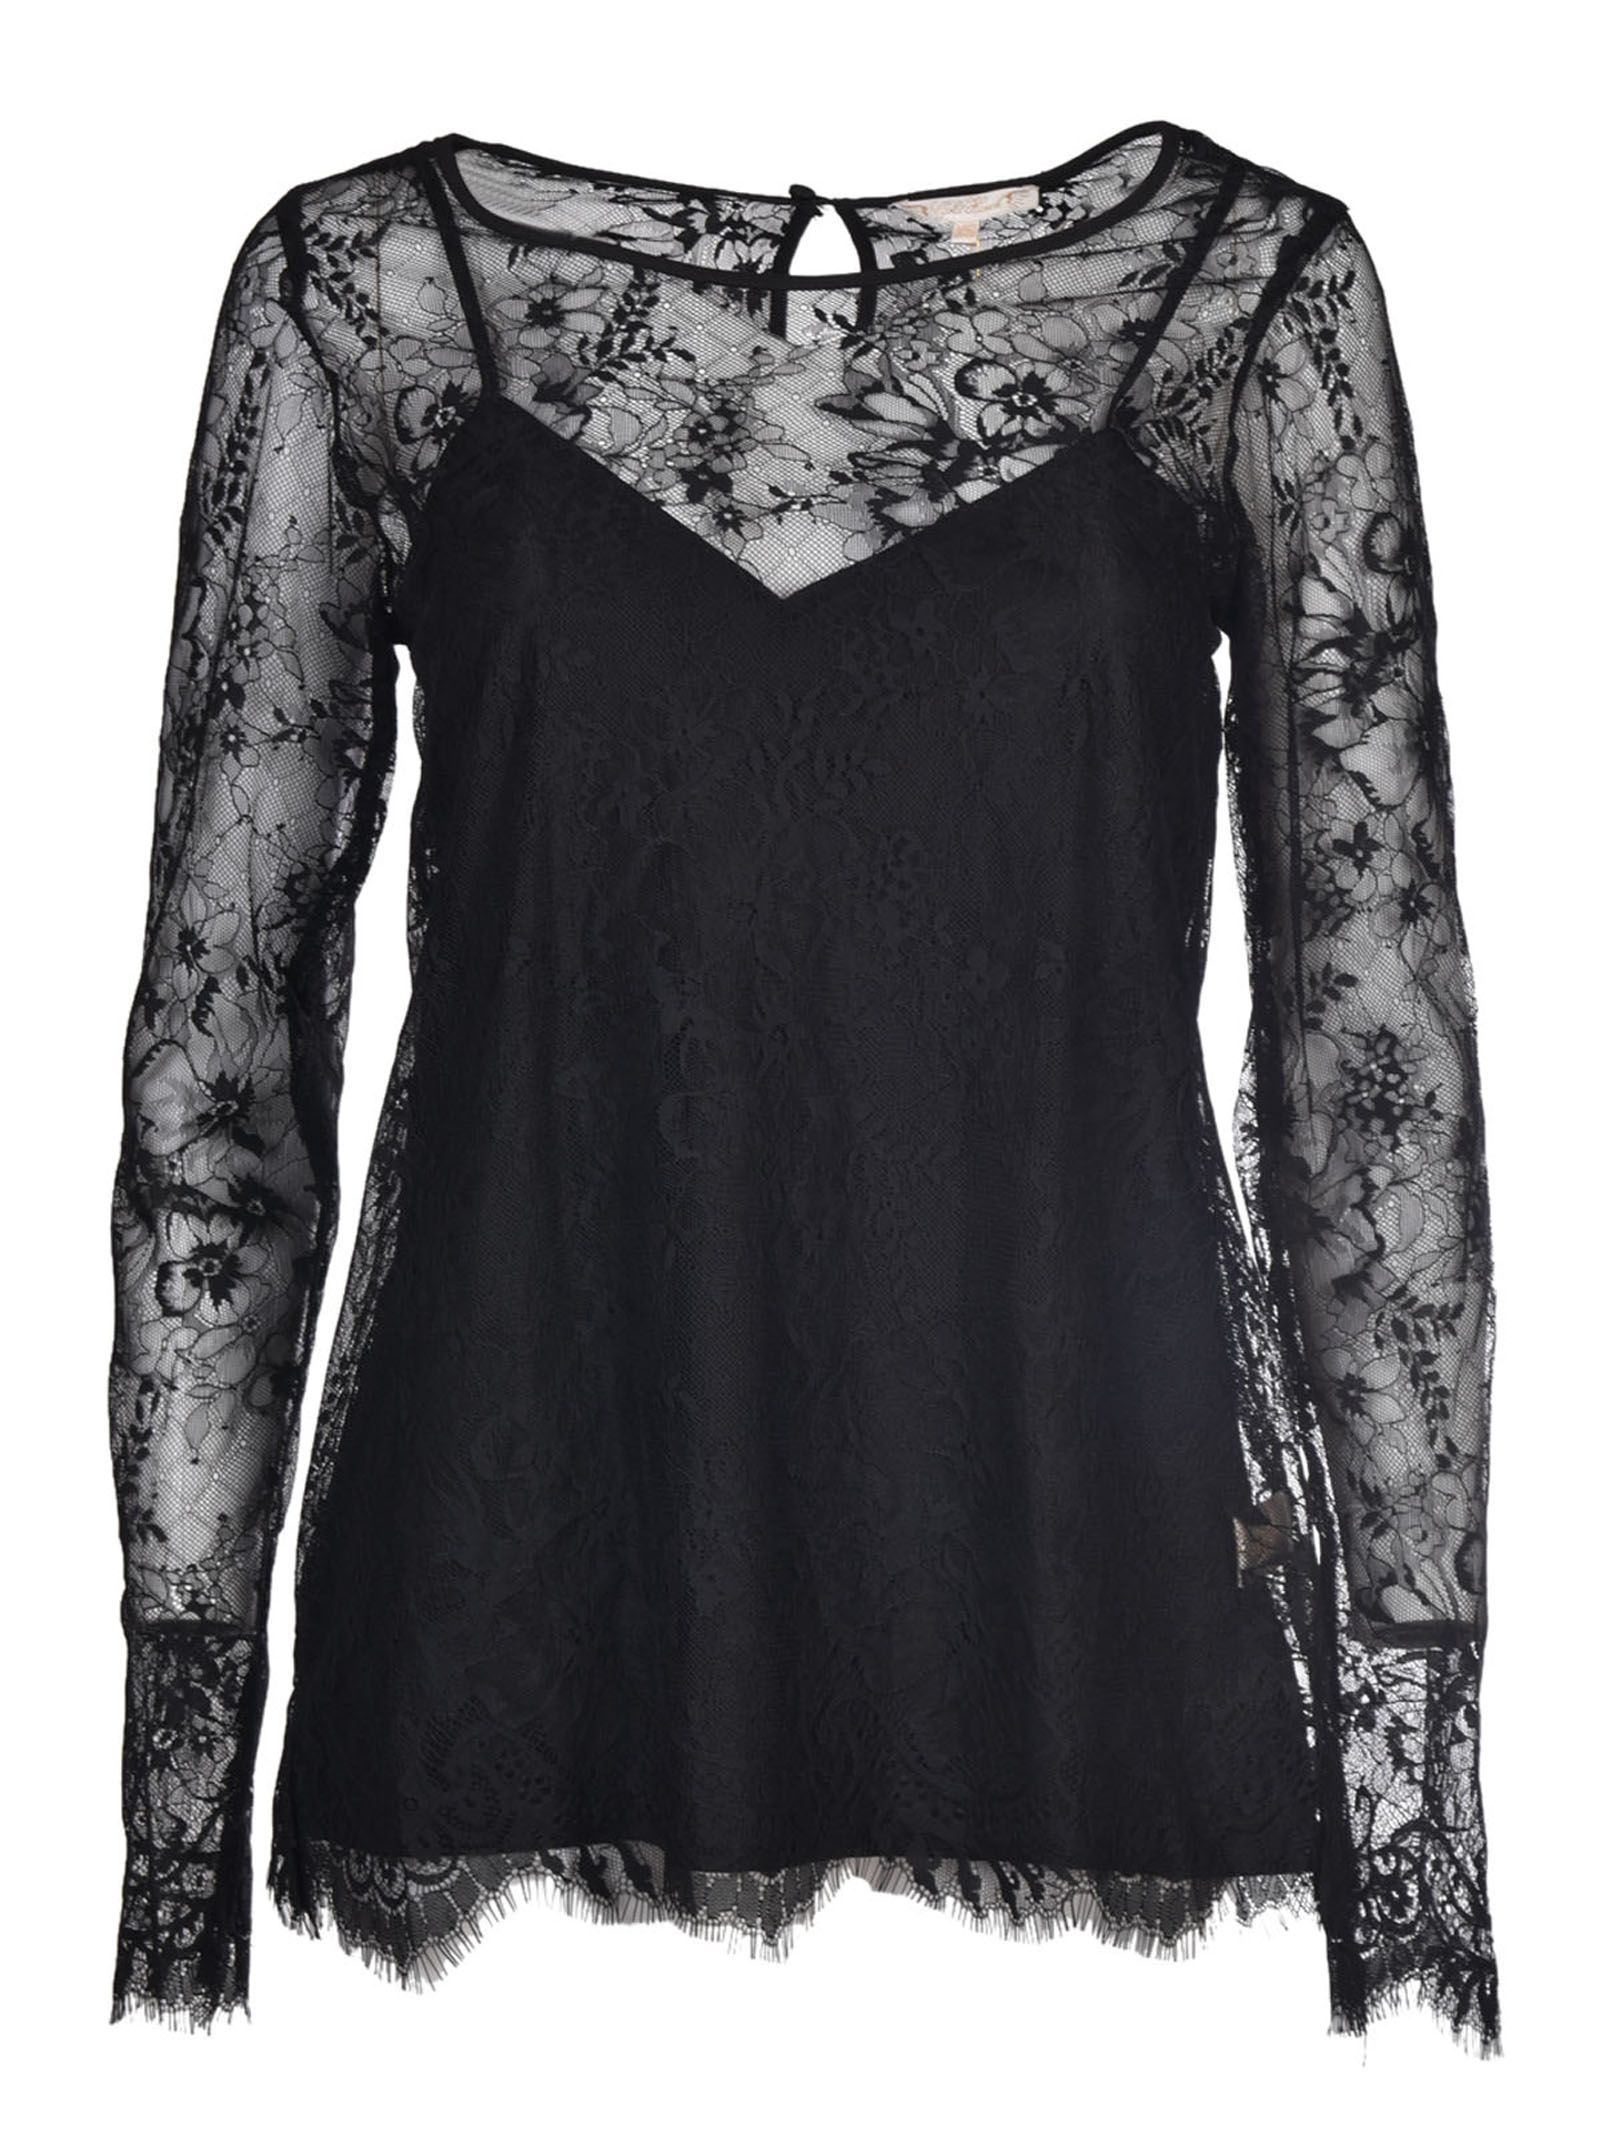 Gold Hawk Lace Detailing Blouse